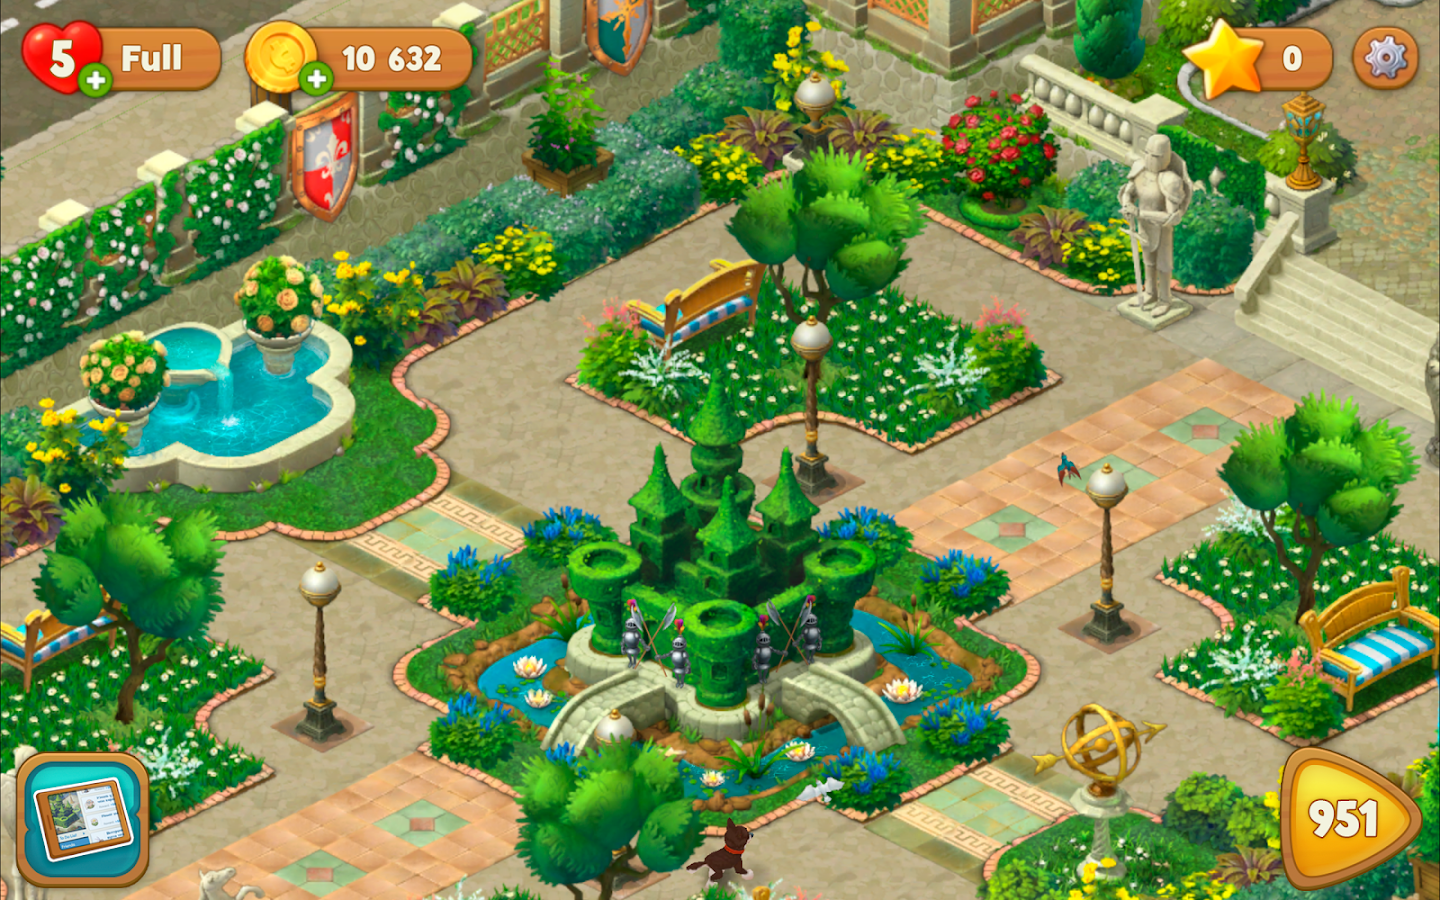 gardenscapes screenshot - Garden Design Game